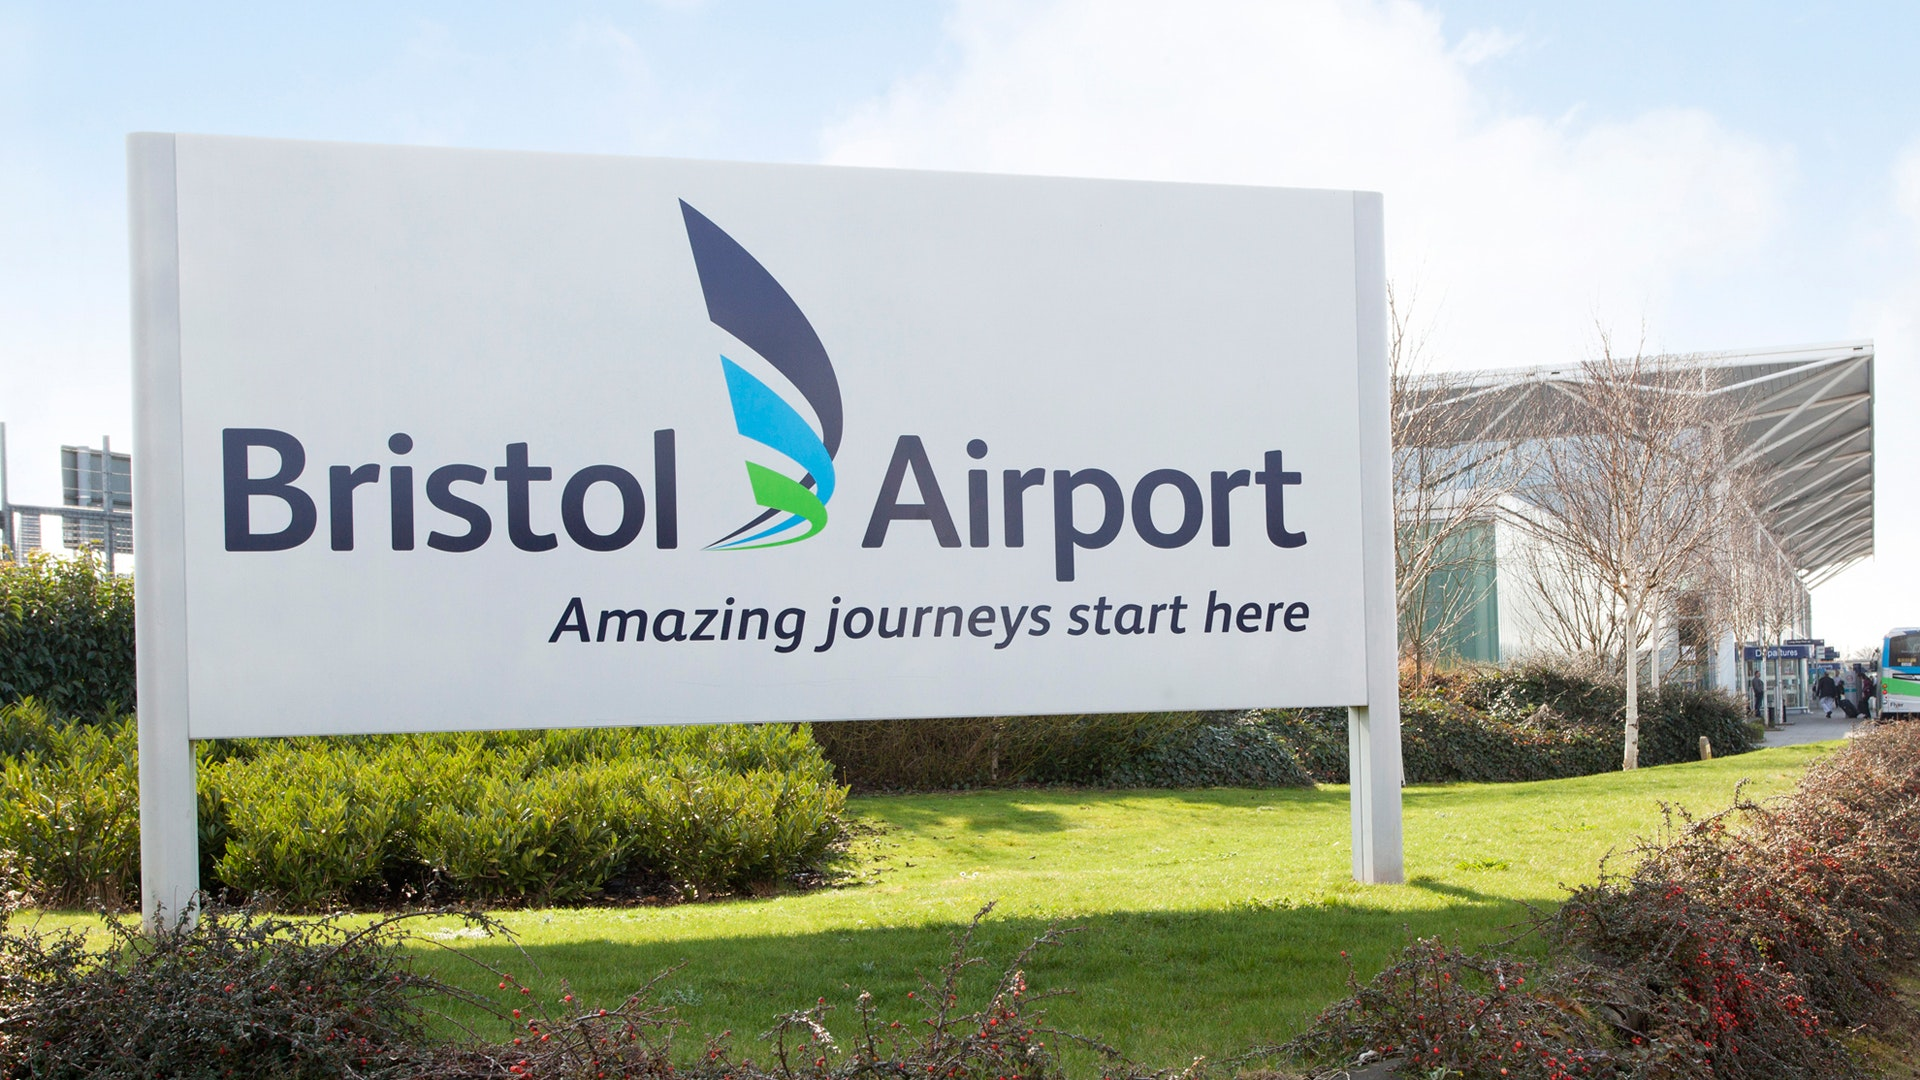 Bristol Airport Parking Firm Probed After Vehicles Left In Fields